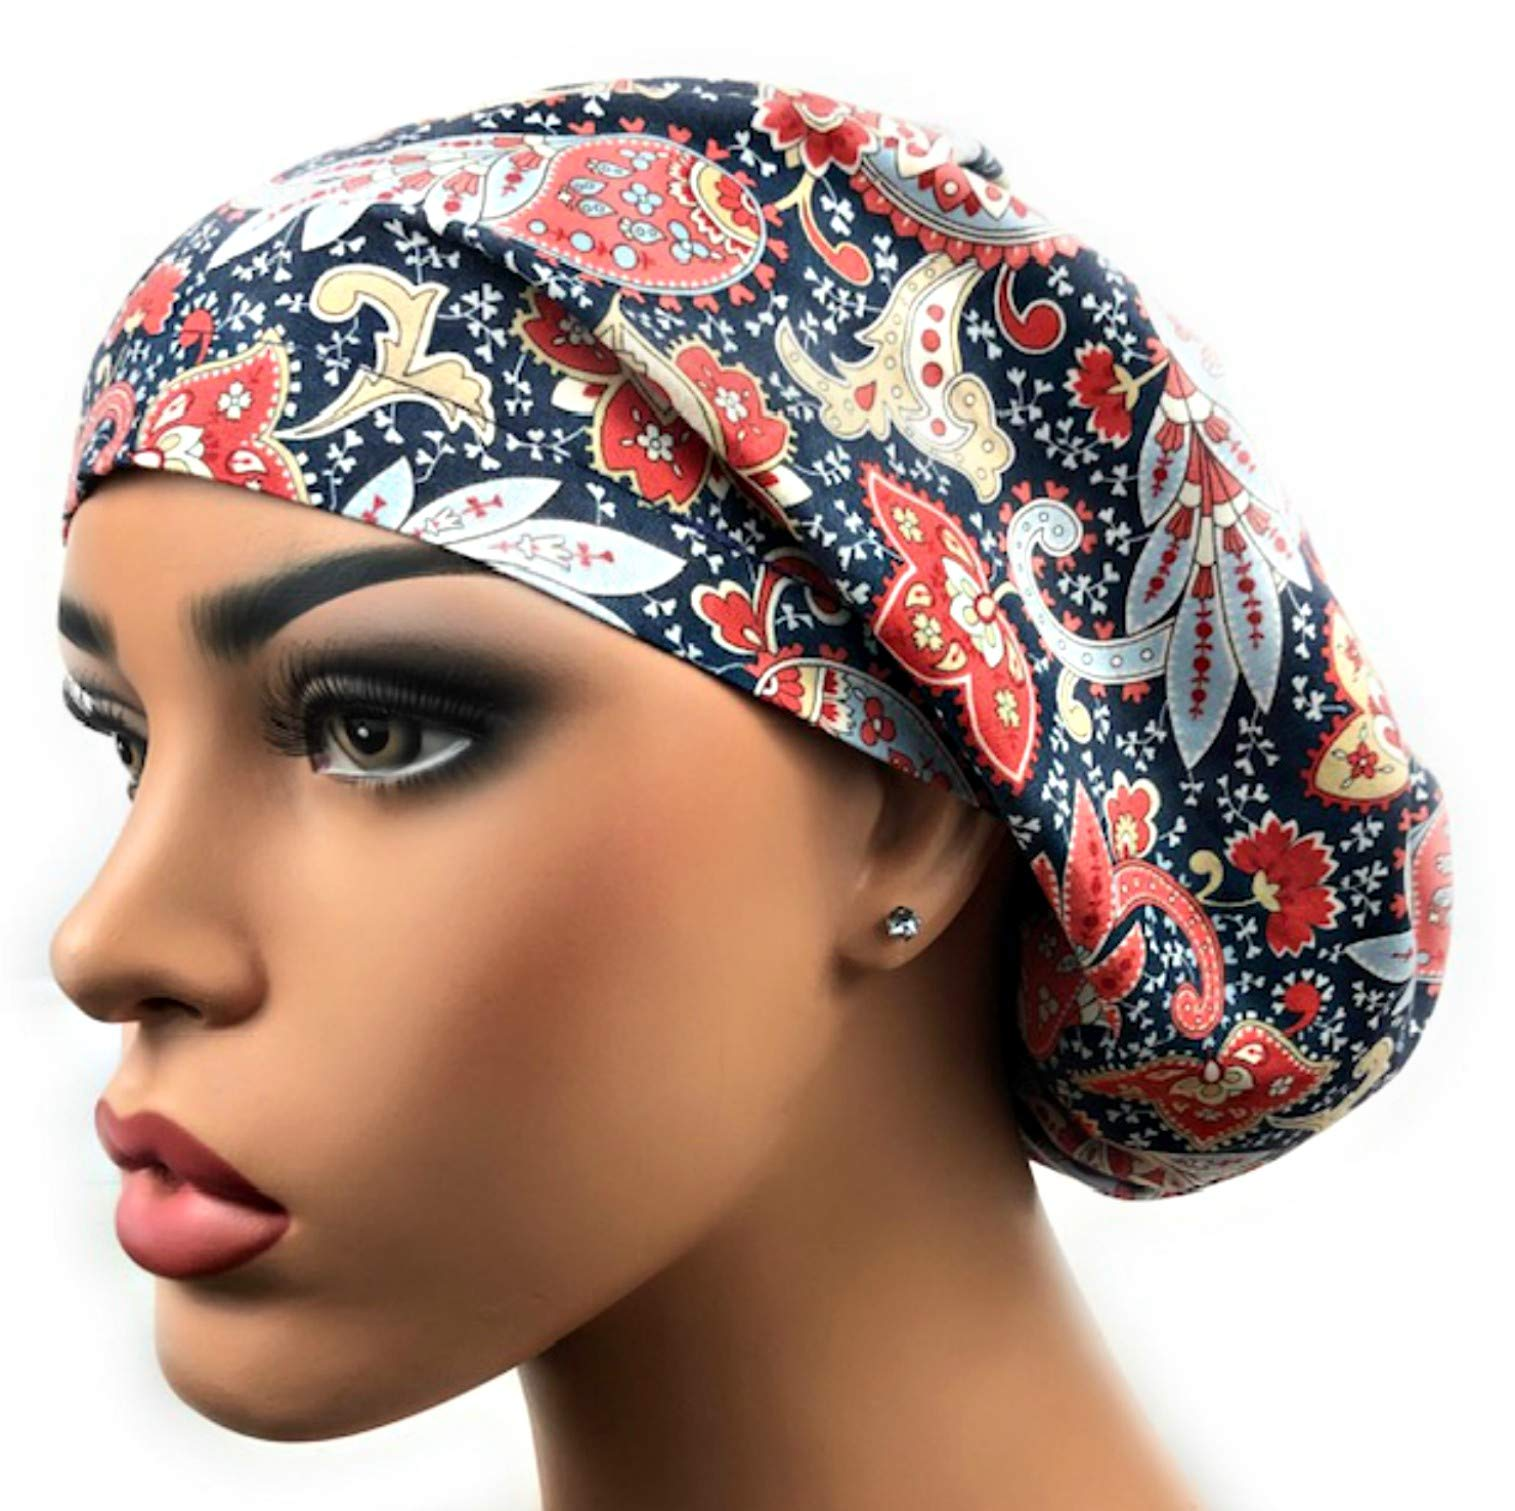 Euro Surgical Scrub Hats Women's Adjustable Bouffant Cap Navy Blue Paisley by DK Scrub Hats